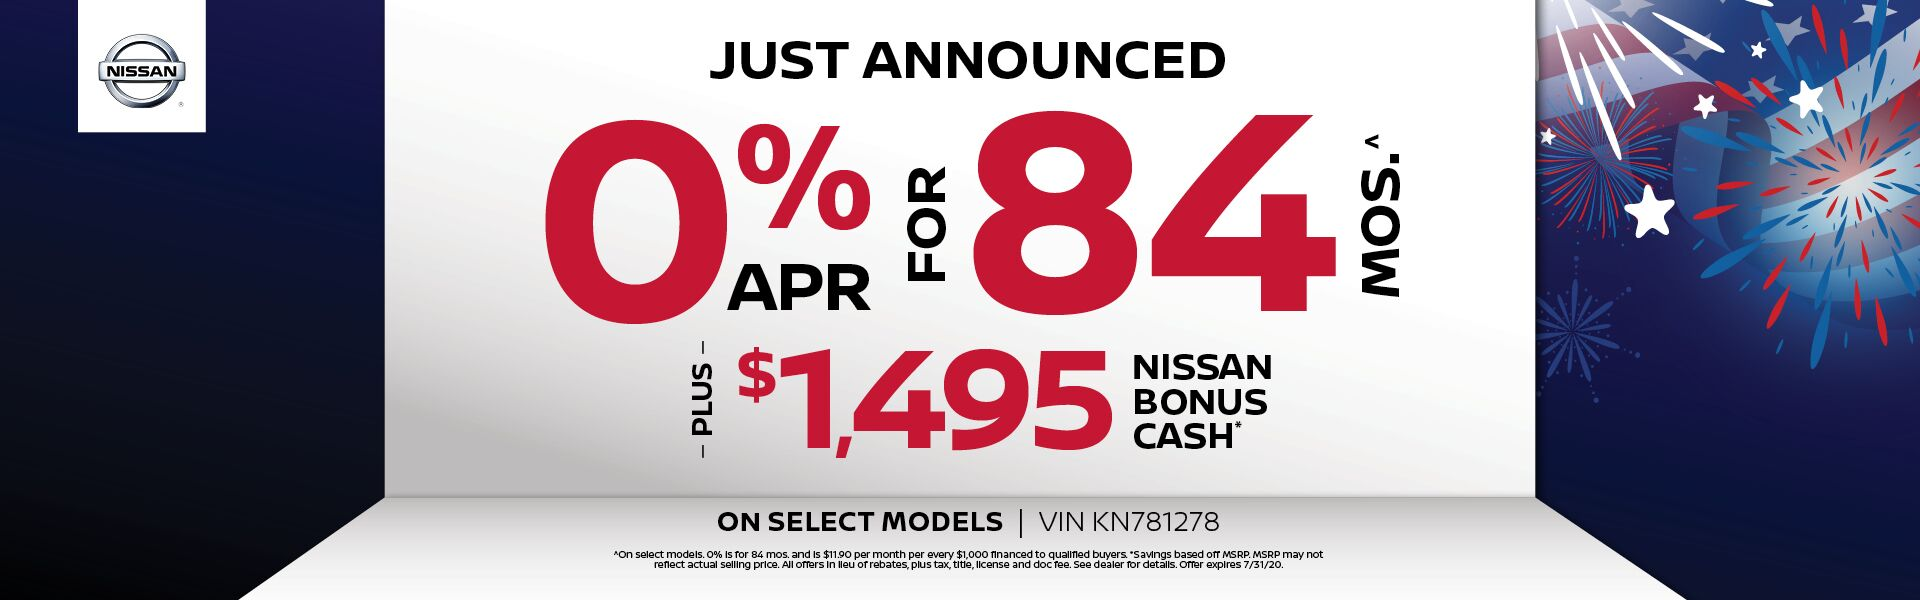 0% x 84 Plus $2500 Nissan Bonus Cash